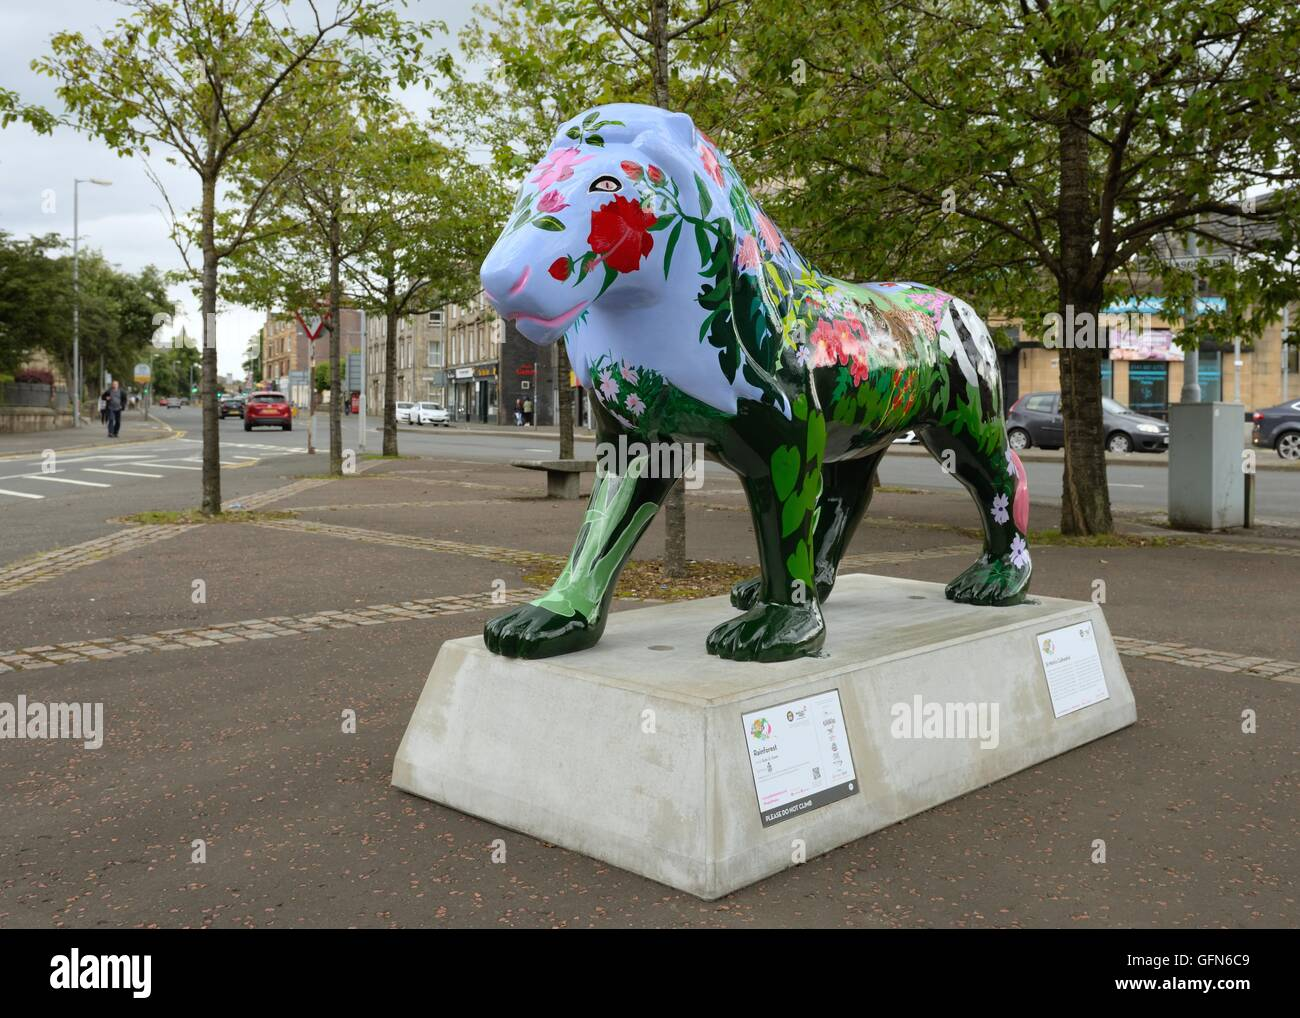 One of the painted lions in 'The Pride of Paisley Wild in Art Project', Paisley, Scotland, UK - Stock Image